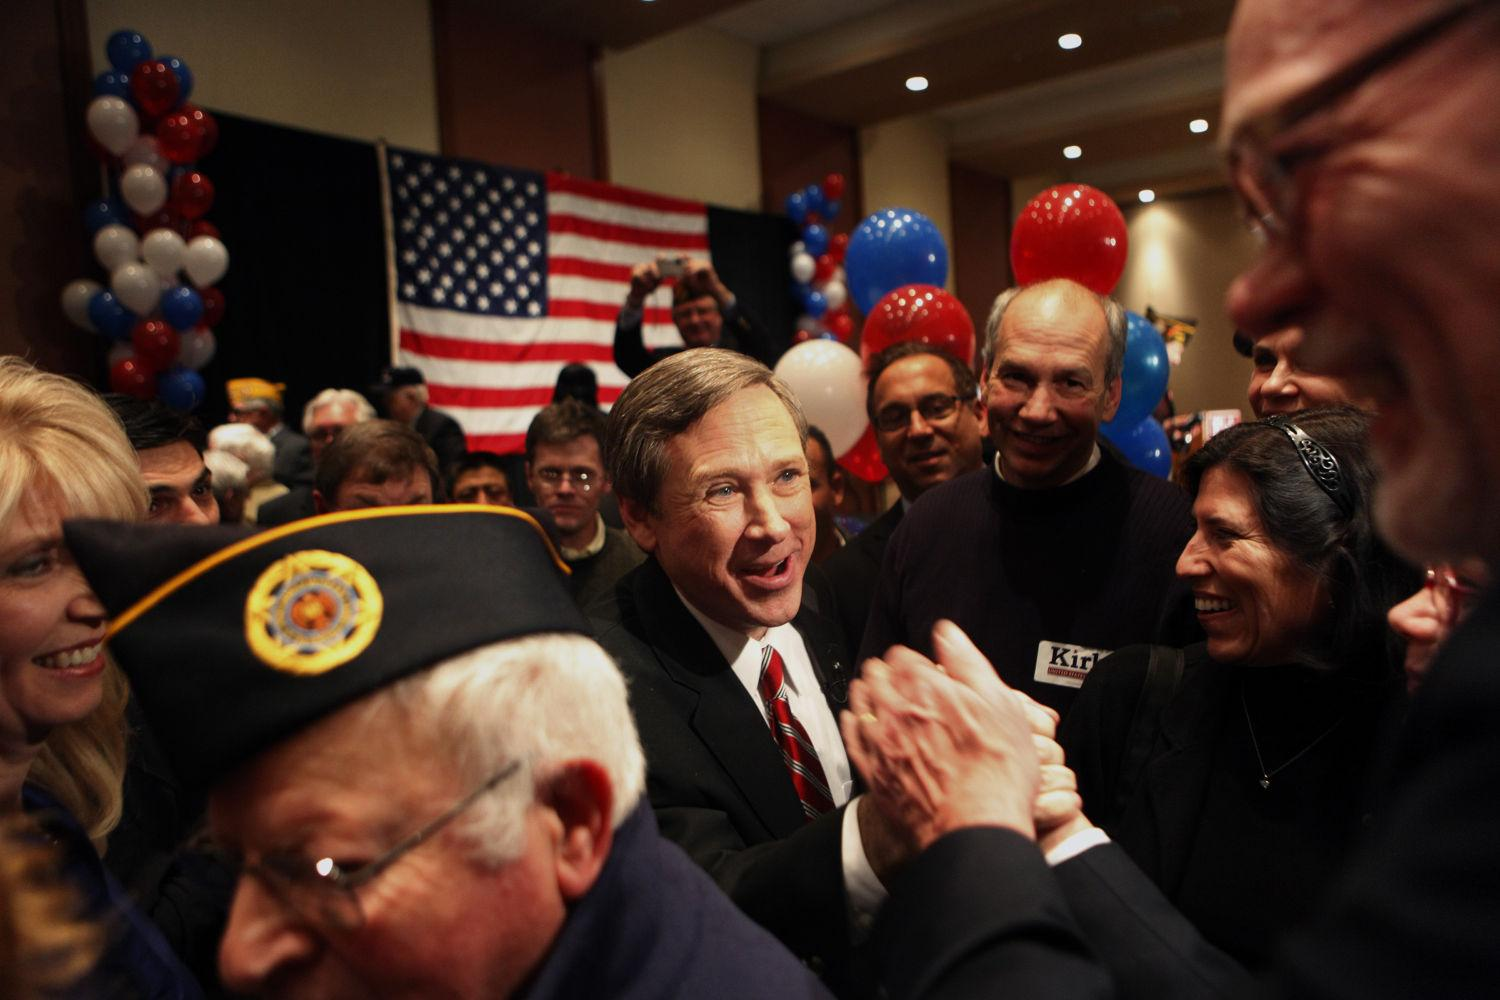 U.S. Rep. Mark Kirk (R-Ill.) is congratulated after winning the Republican primary for Illinois's U.S. Senate seat on Feb. 2, 2010, in Wheeling. (Lane Christiansen/Chicago Tribune/MCT)